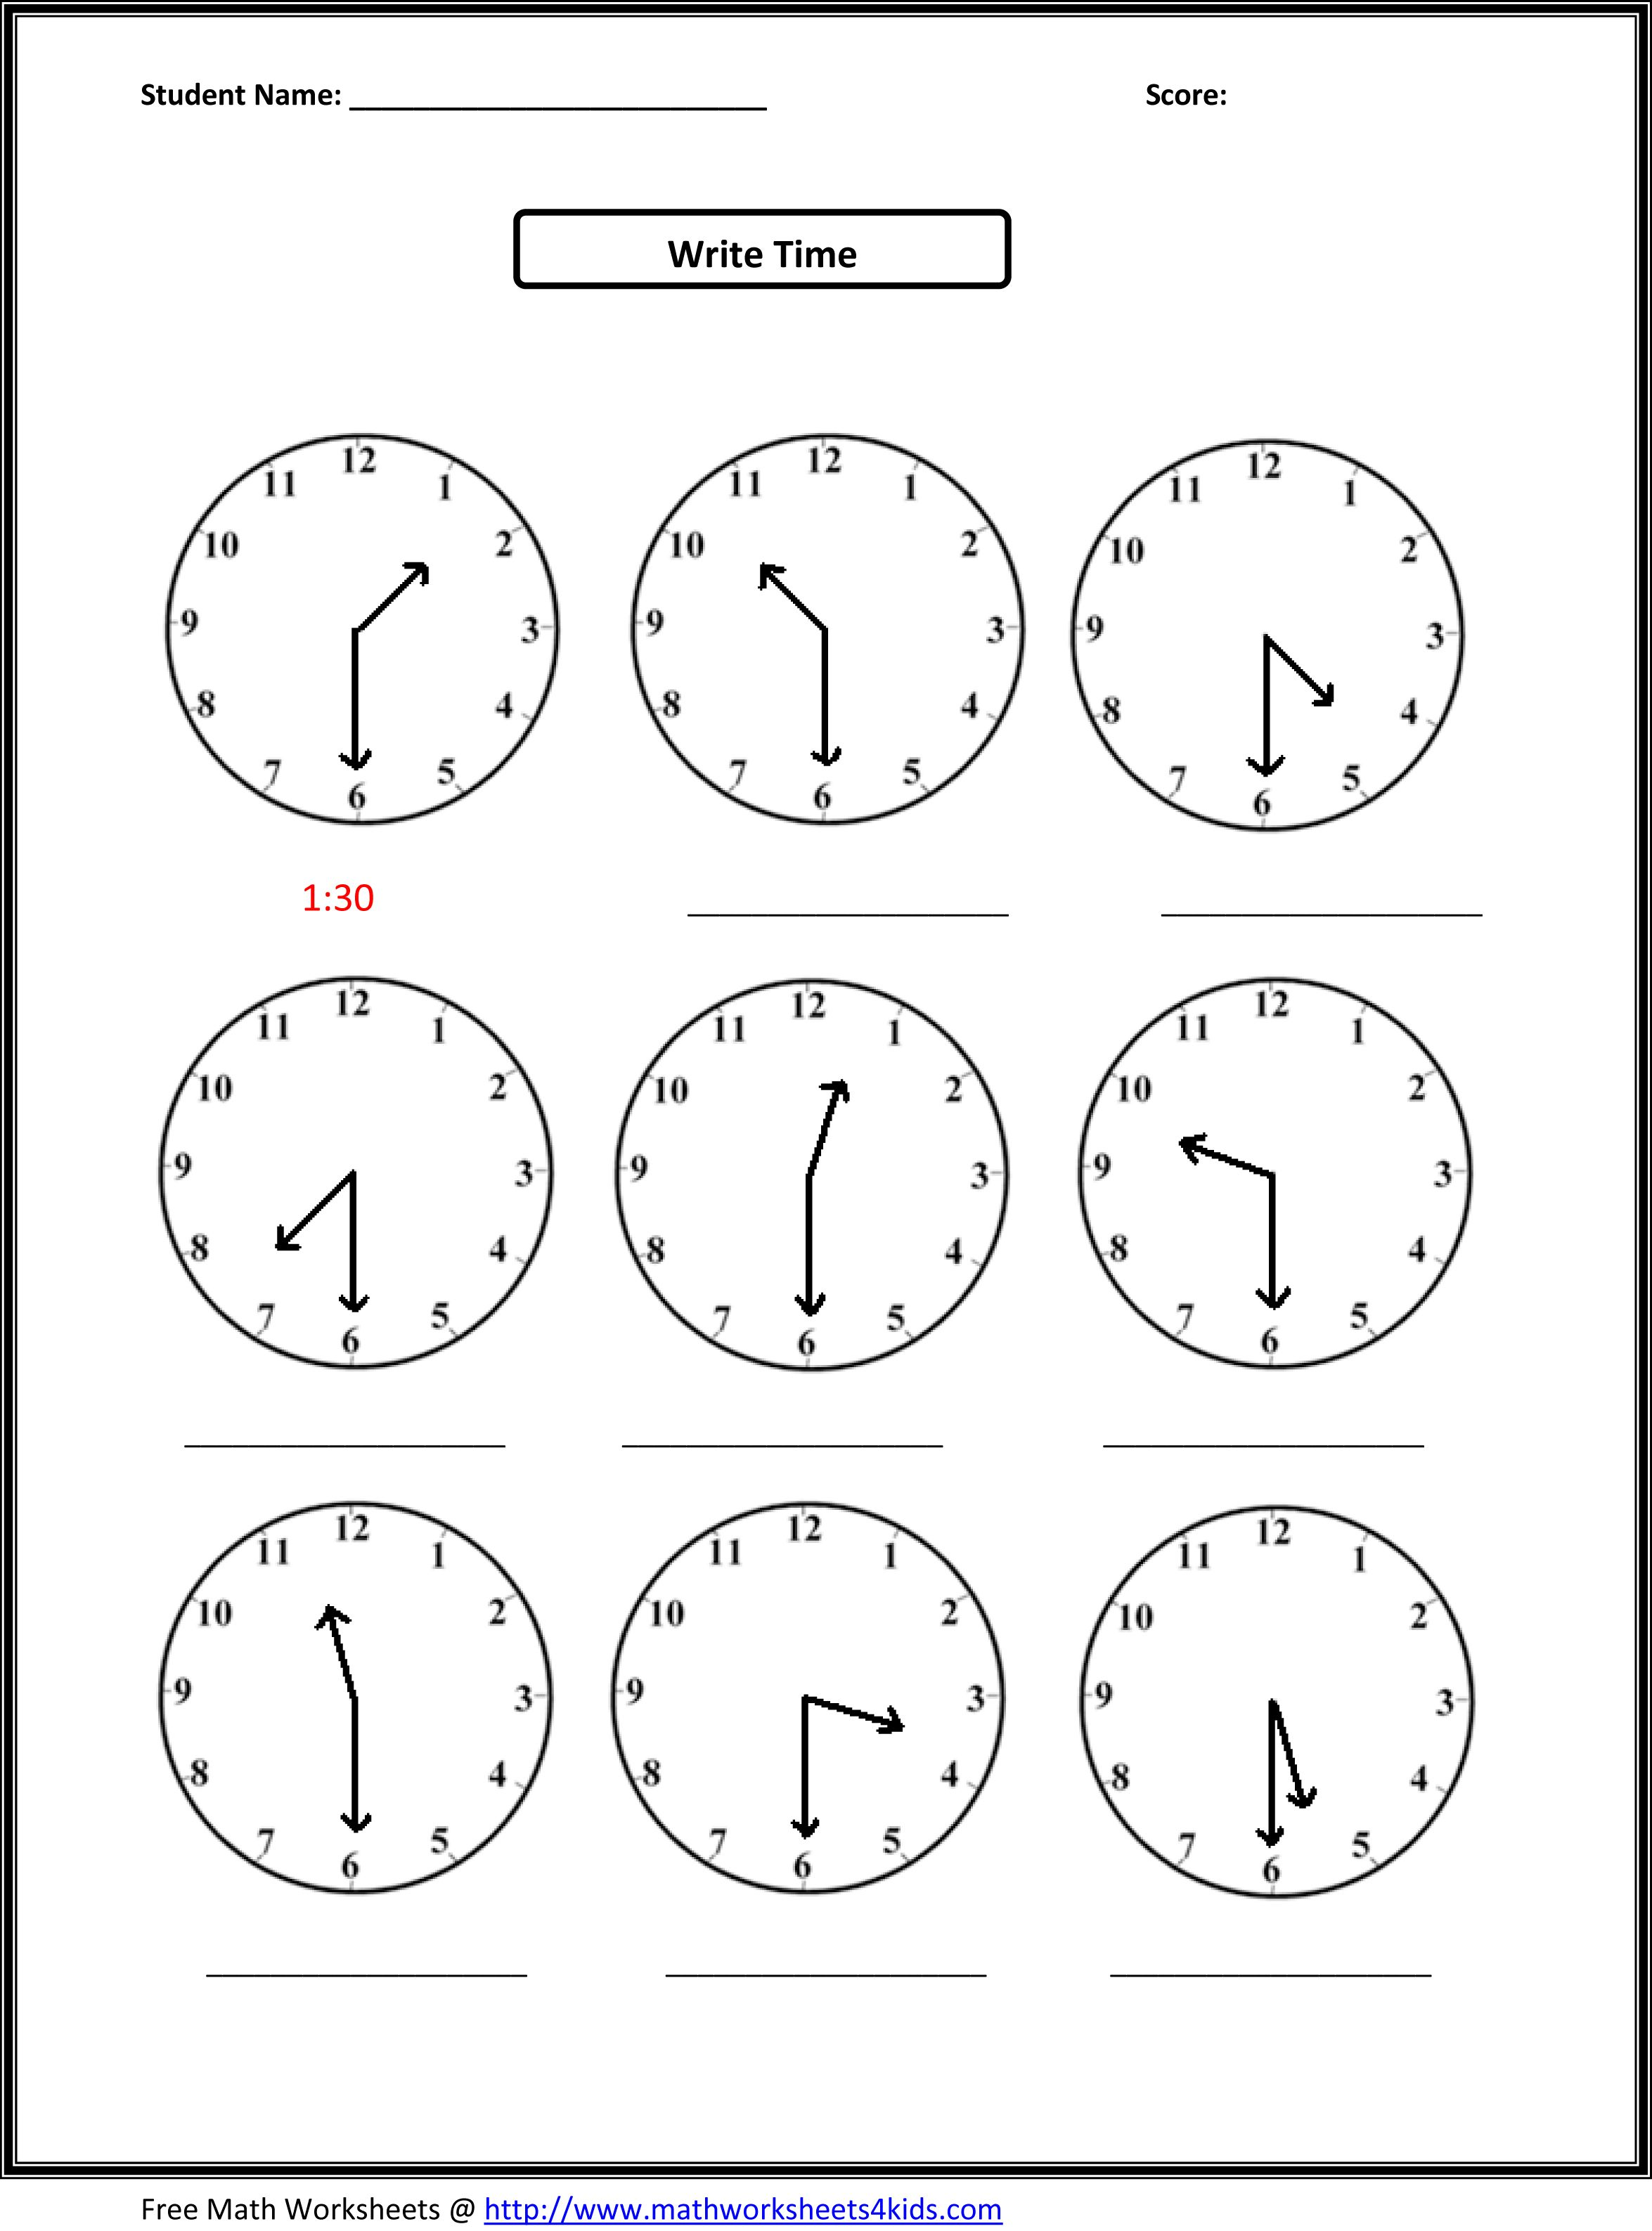 Proatmealus  Fascinating Worksheet On Time For Grade   Reocurent With Heavenly Free Printable Telling Time Worksheets Nd Grade  Reocurent With Appealing Nd Class Maths Worksheets Also Math Worksheets Pictures In Addition Worksheet For Synonyms And Key Stage  Spelling Worksheets As Well As Worksheet On Division For Grade  Additionally Matrices Word Problems Worksheet From Reocurentcom With Proatmealus  Heavenly Worksheet On Time For Grade   Reocurent With Appealing Free Printable Telling Time Worksheets Nd Grade  Reocurent And Fascinating Nd Class Maths Worksheets Also Math Worksheets Pictures In Addition Worksheet For Synonyms From Reocurentcom